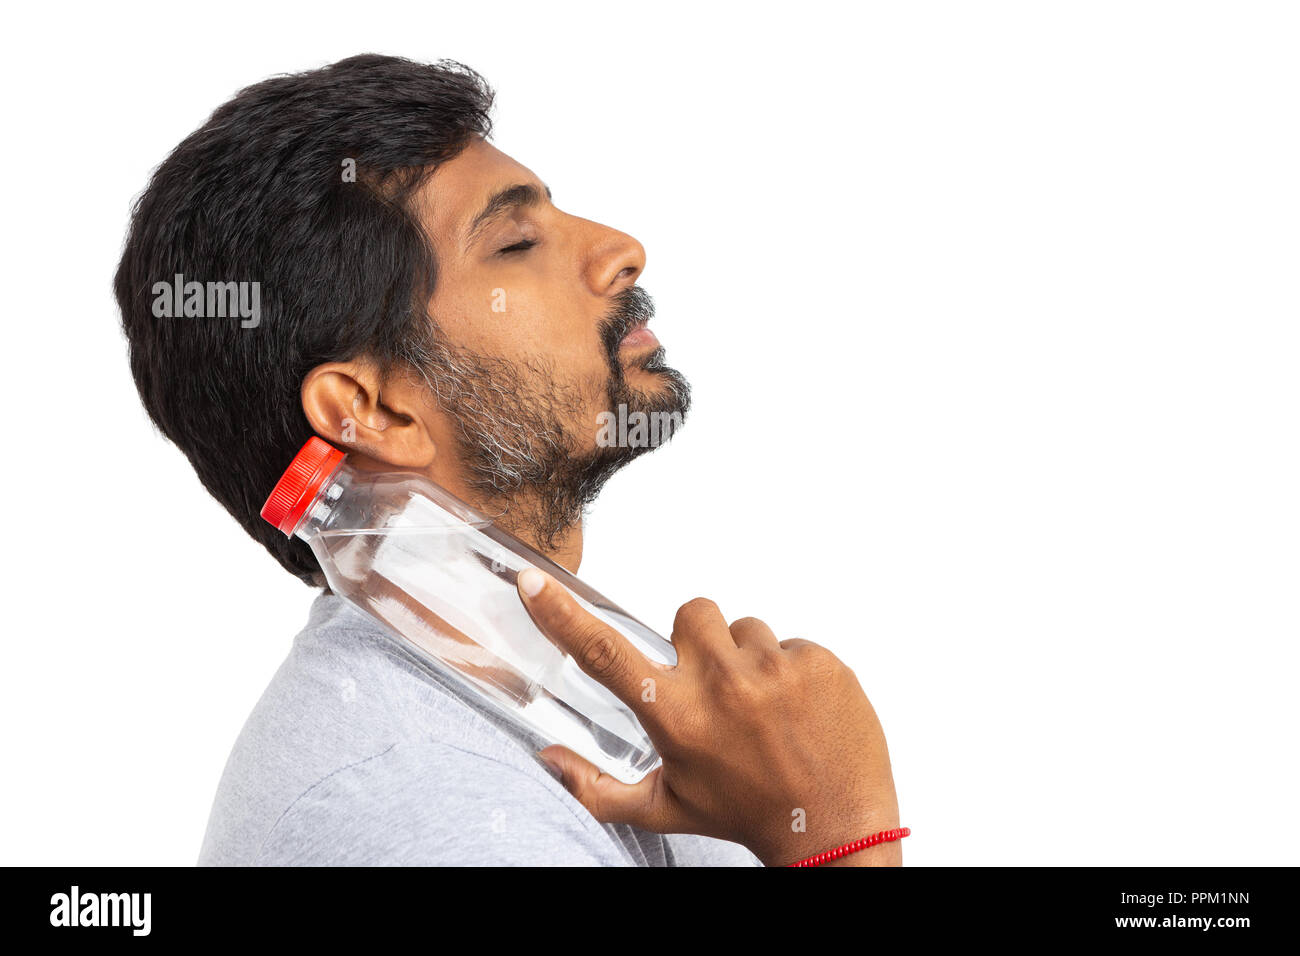 Indian person cooling down neck by touching it with a cold water bottle isolated on white background as summer refreshment concept - Stock Image